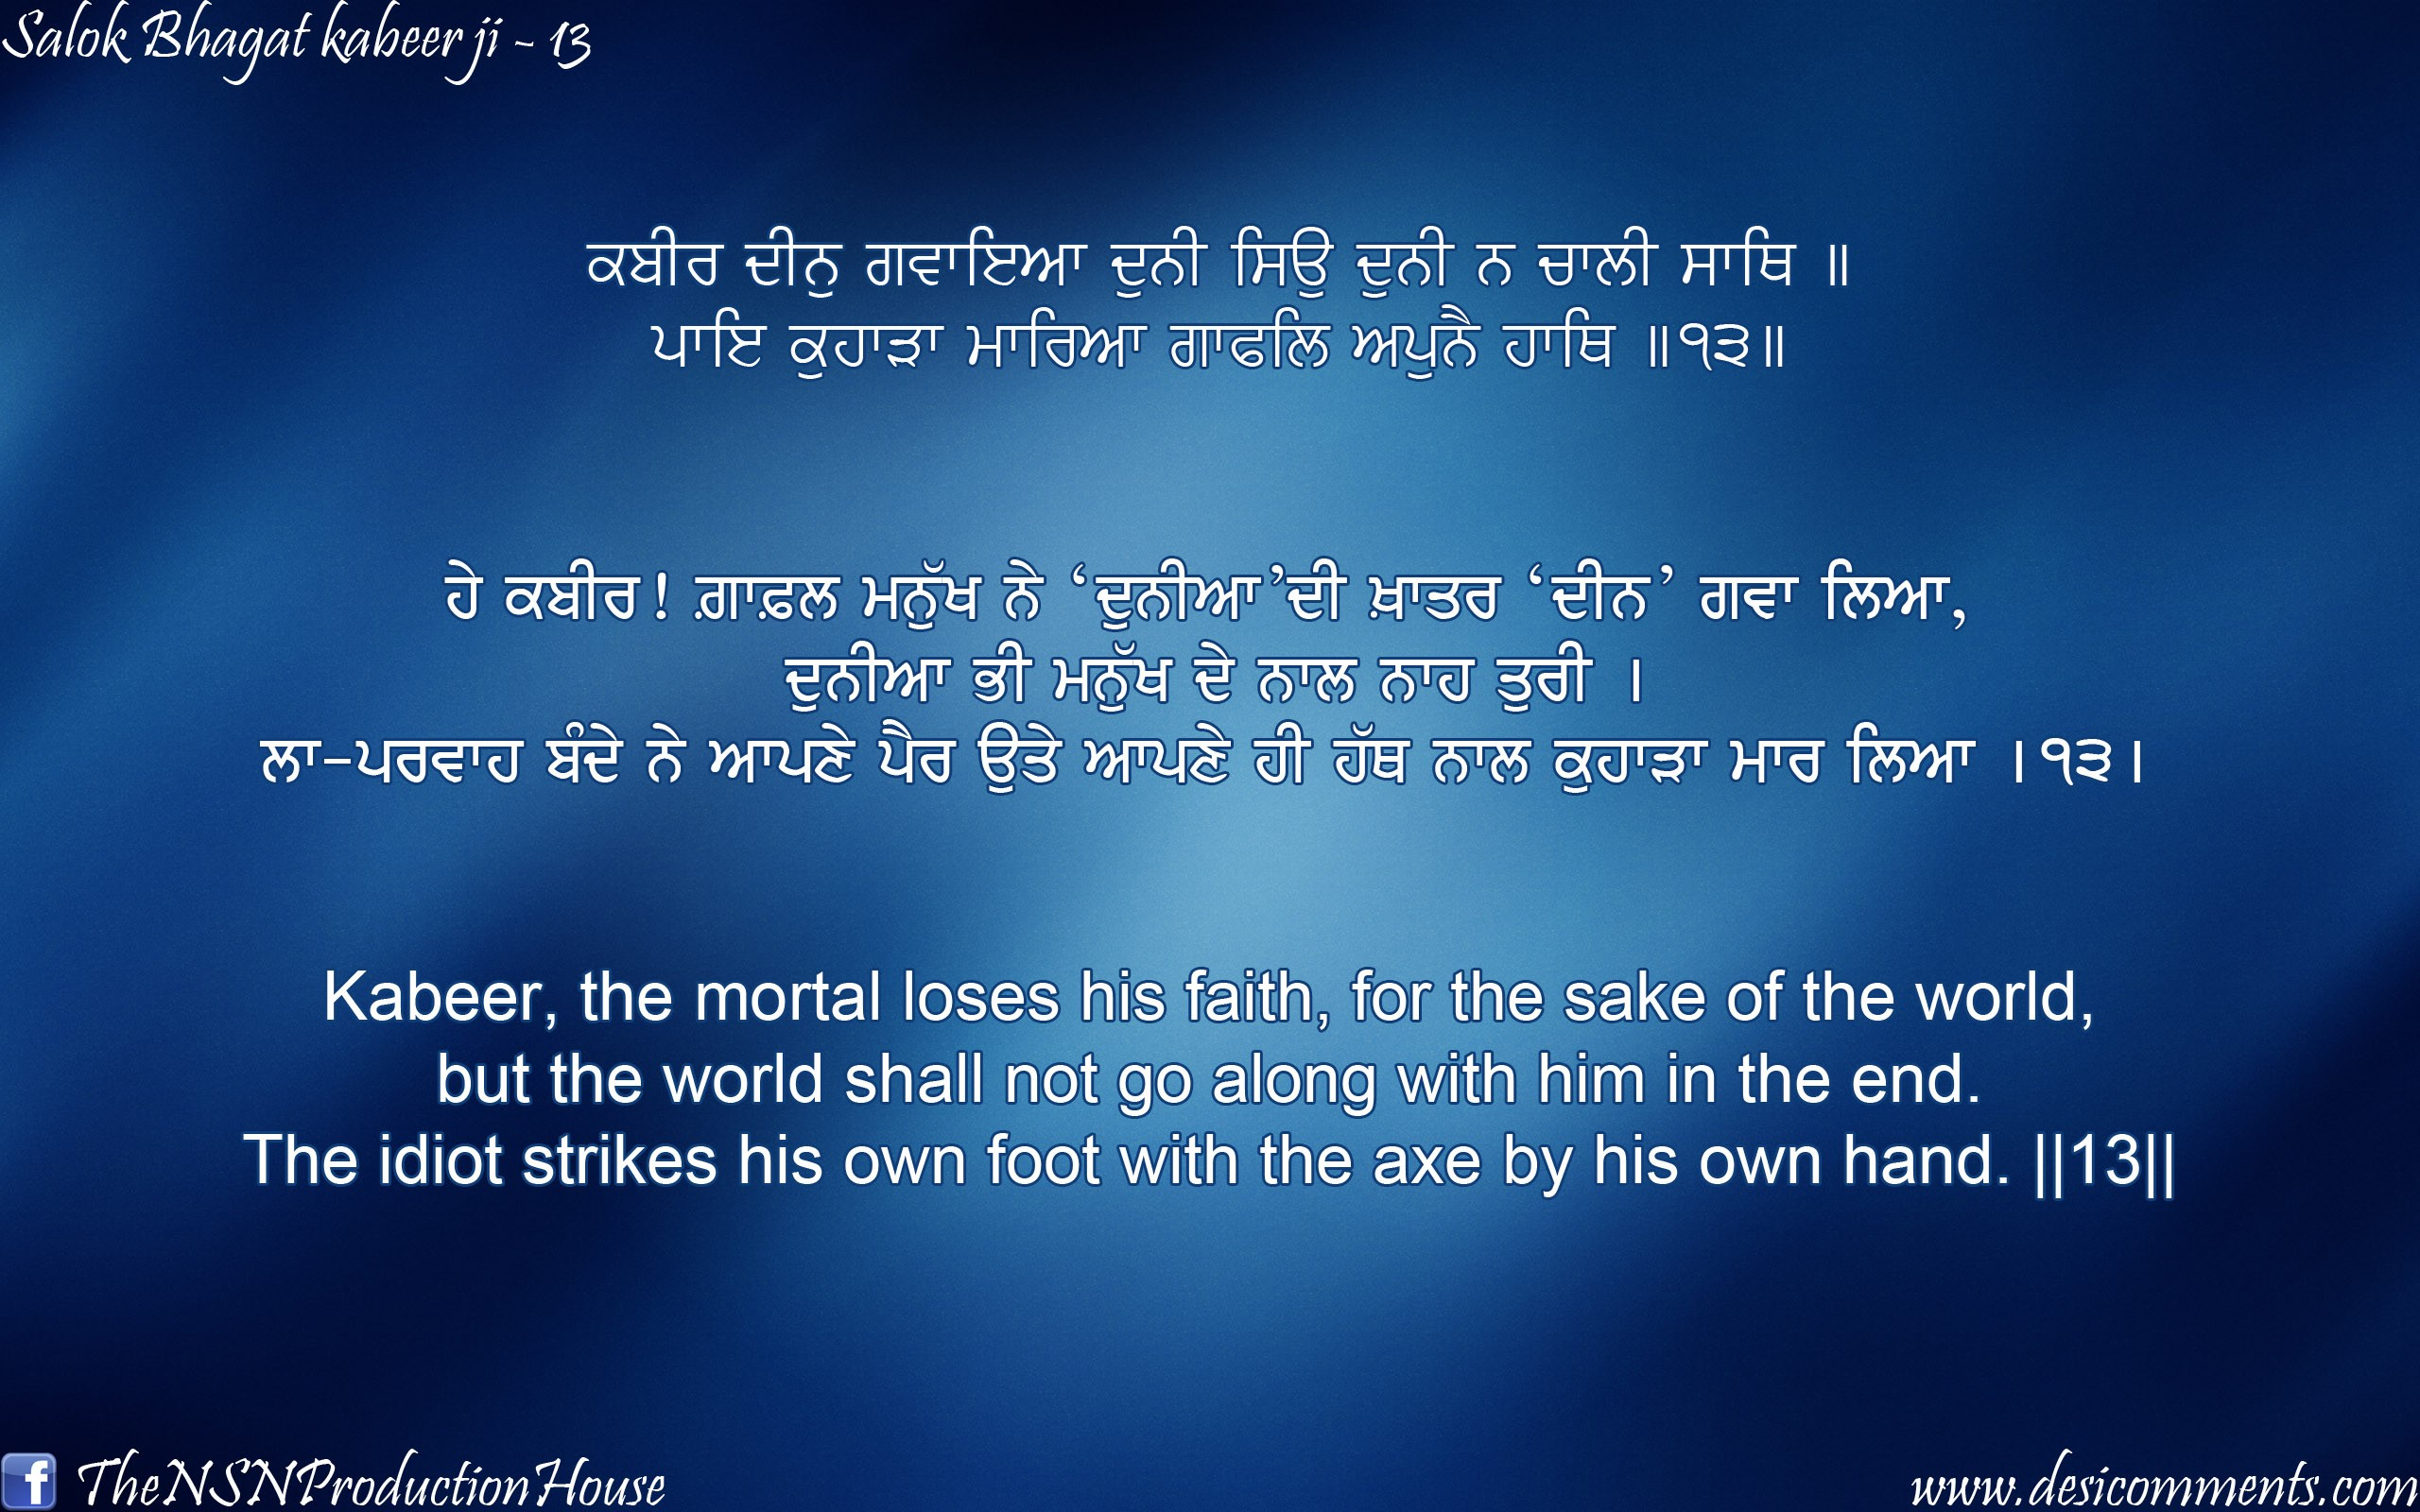 Sad Wallpapers With Quotes In Urdu Salok Bhagat Kabeer Ji 13 Desicomments Com